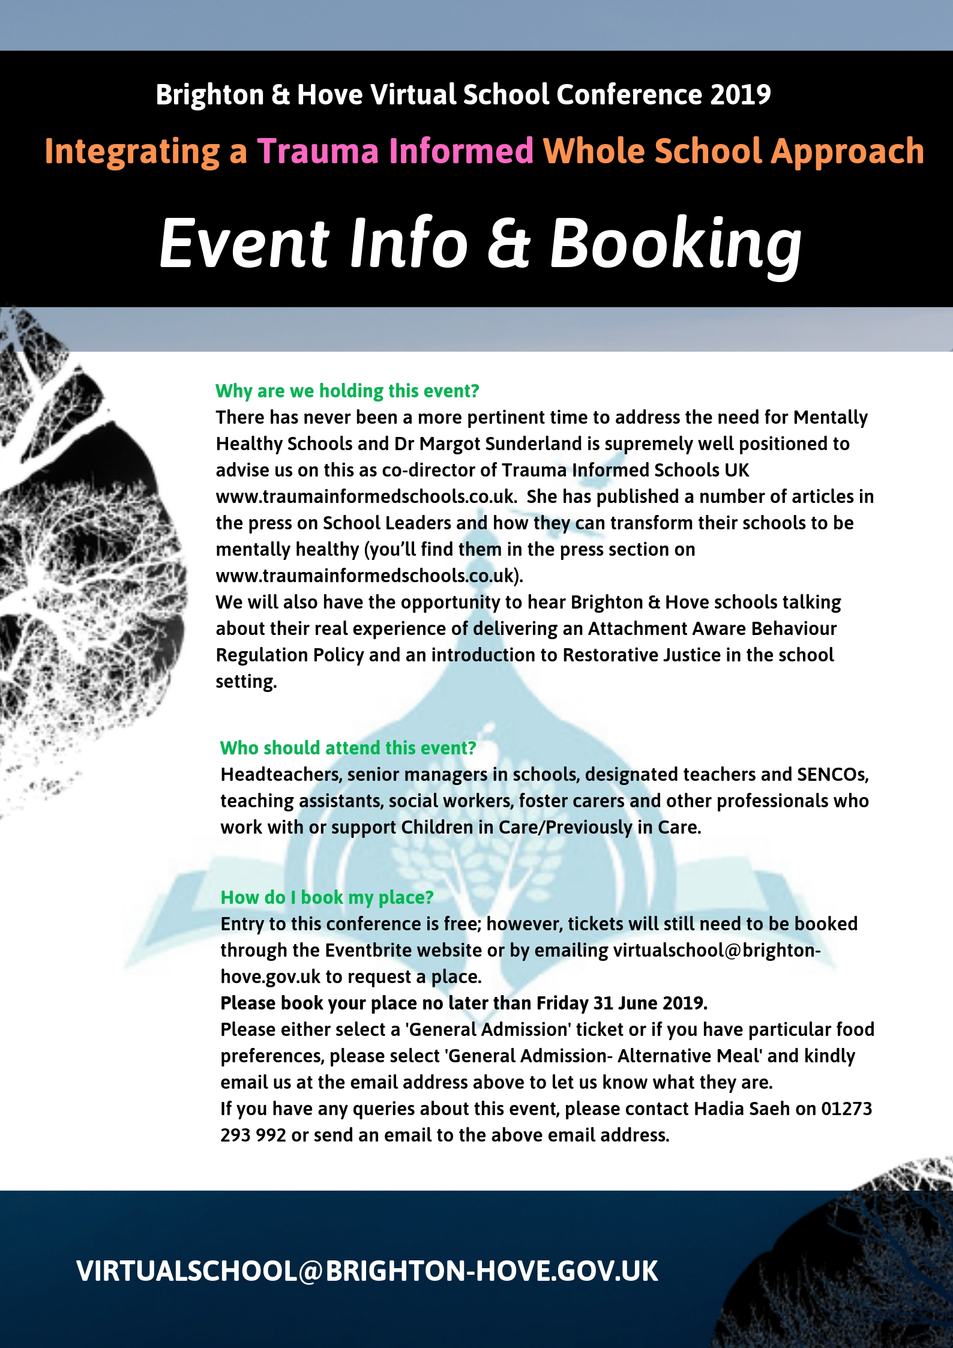 Virtual School Conference Info & Booking